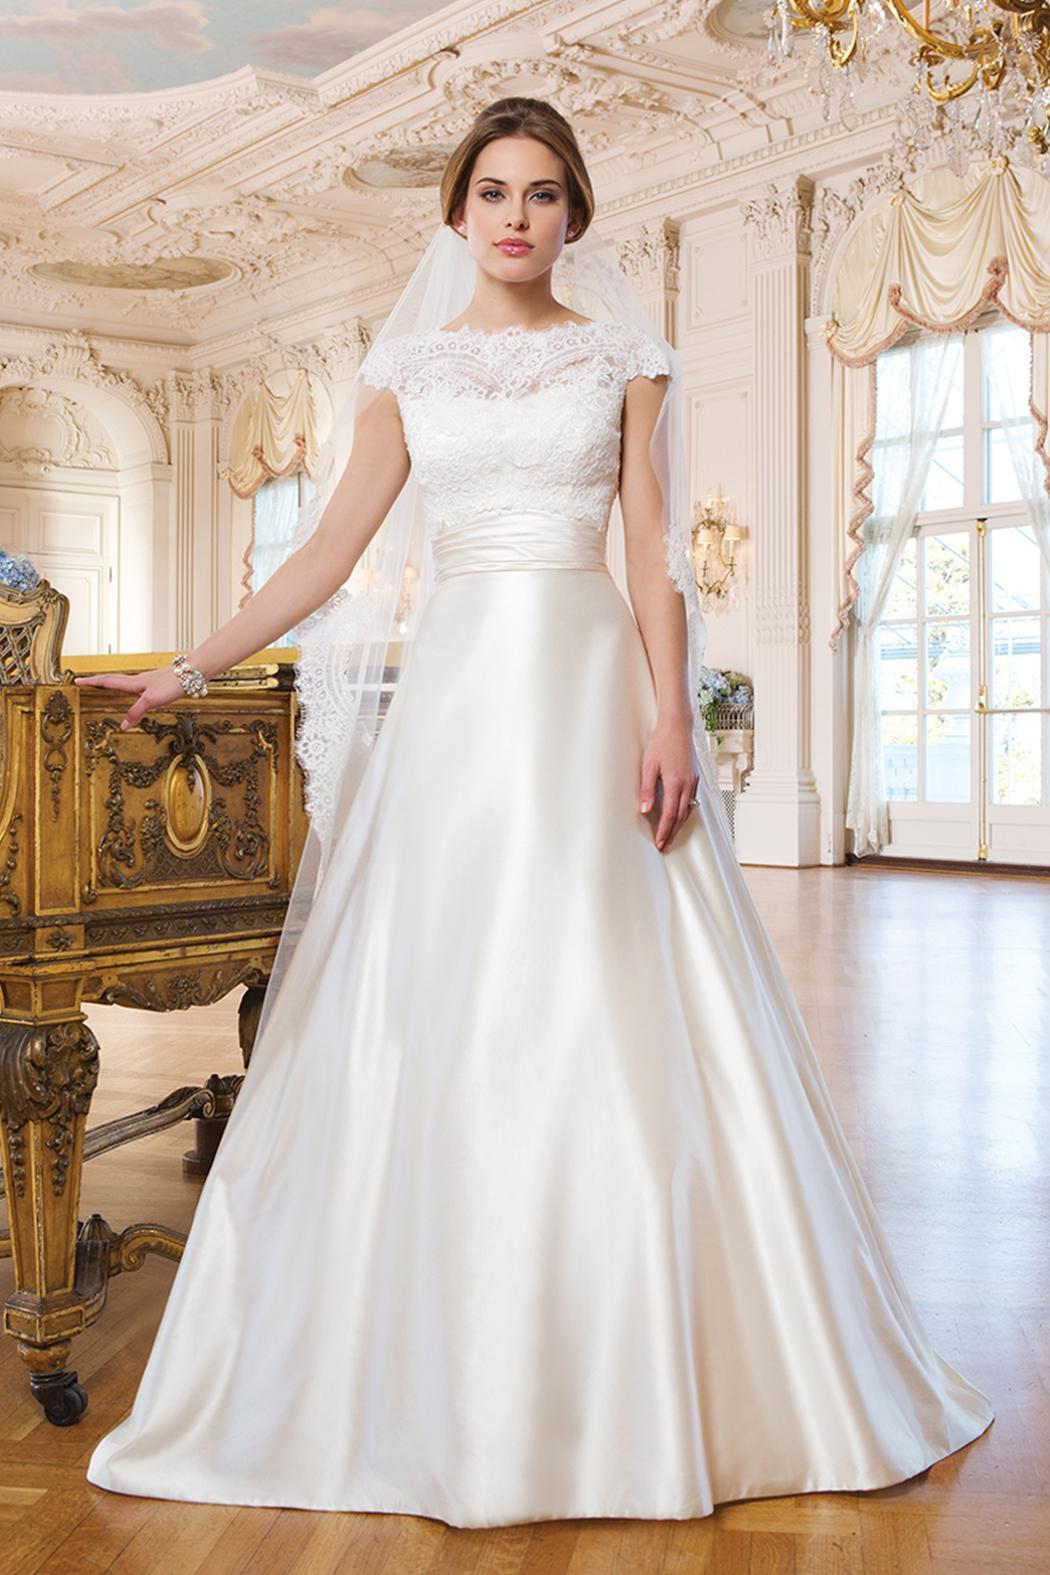 Justin Alexander Satin Ball Gown from Illinois by Bridal Elegance ...